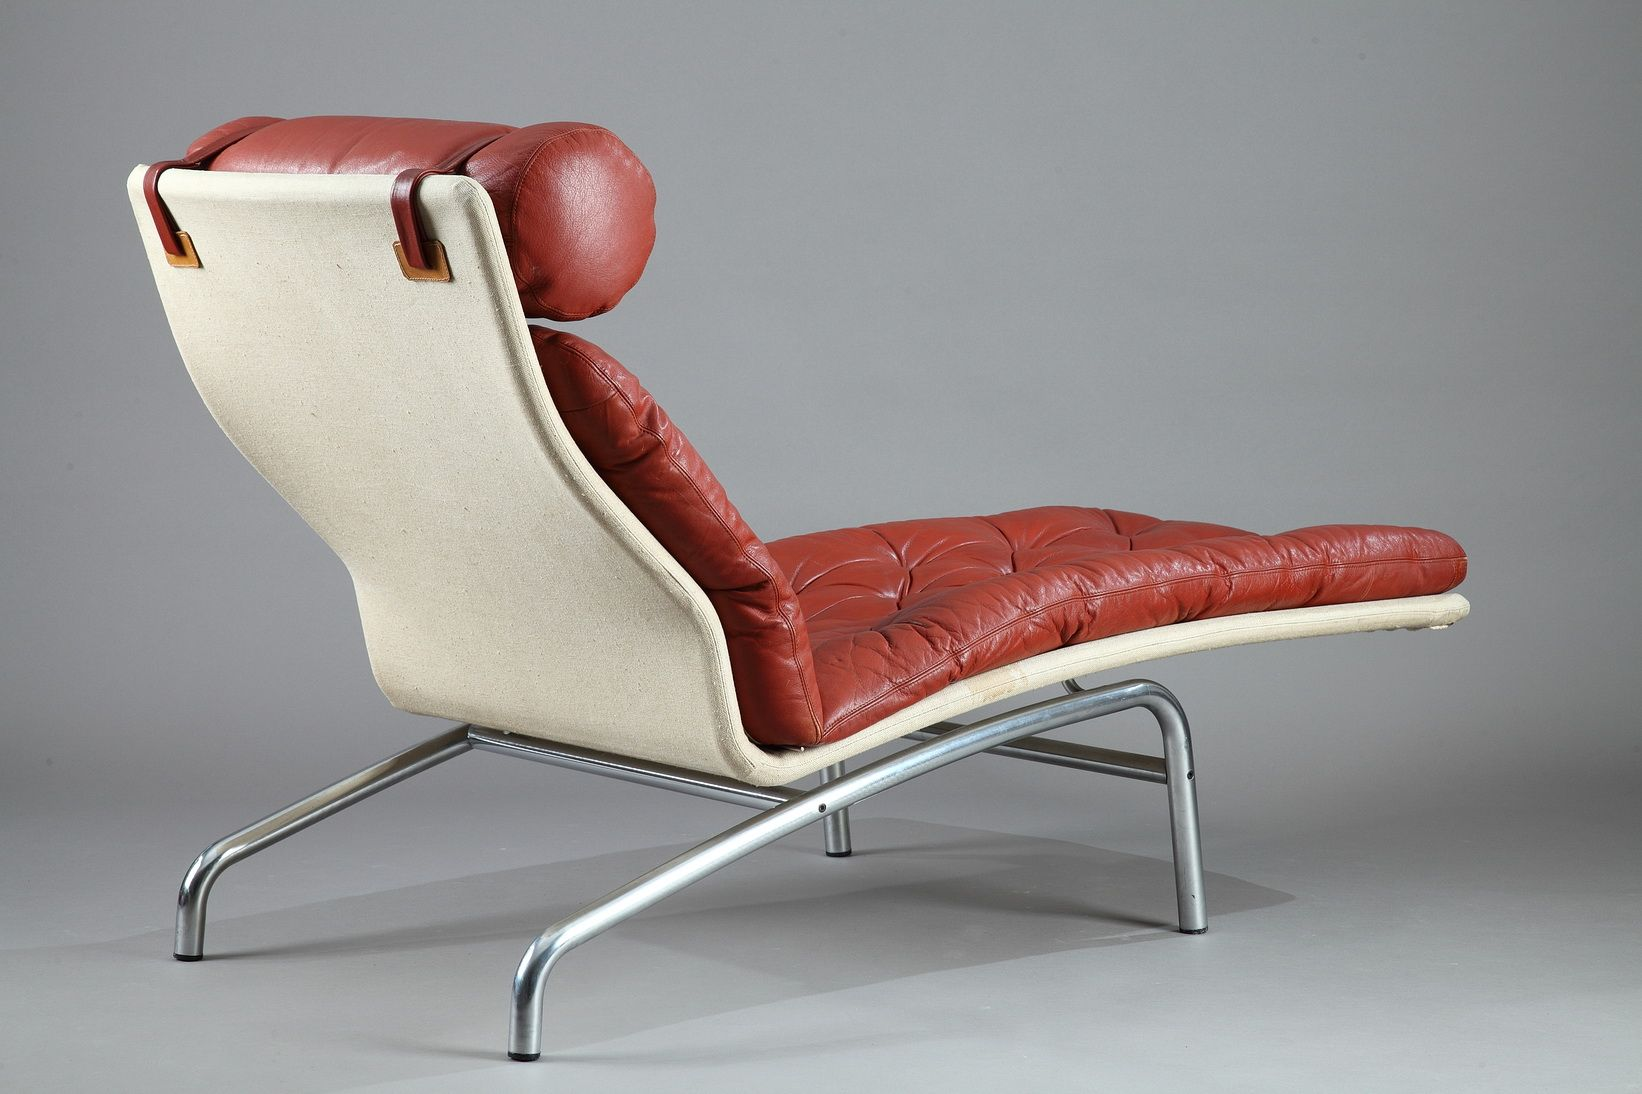 chaise longue manufacturers uk with Chaise Longue With A Mat Chromed Steel Frame And Red Leather By Arne Vodder For Erik Jorgensen 1970s 1 on Black Leather Chaise Longue By Tord Bjorklund 1970 Sweden together with Black Leather Swivel Recliner Footstool additionally Chaise Longue By Paolo Passerini For Uvet 1985 also Chaise Longue By Rob Eckhardt For Dutch Originals  herlands 1980s also Rgs Tessuto Budapest.